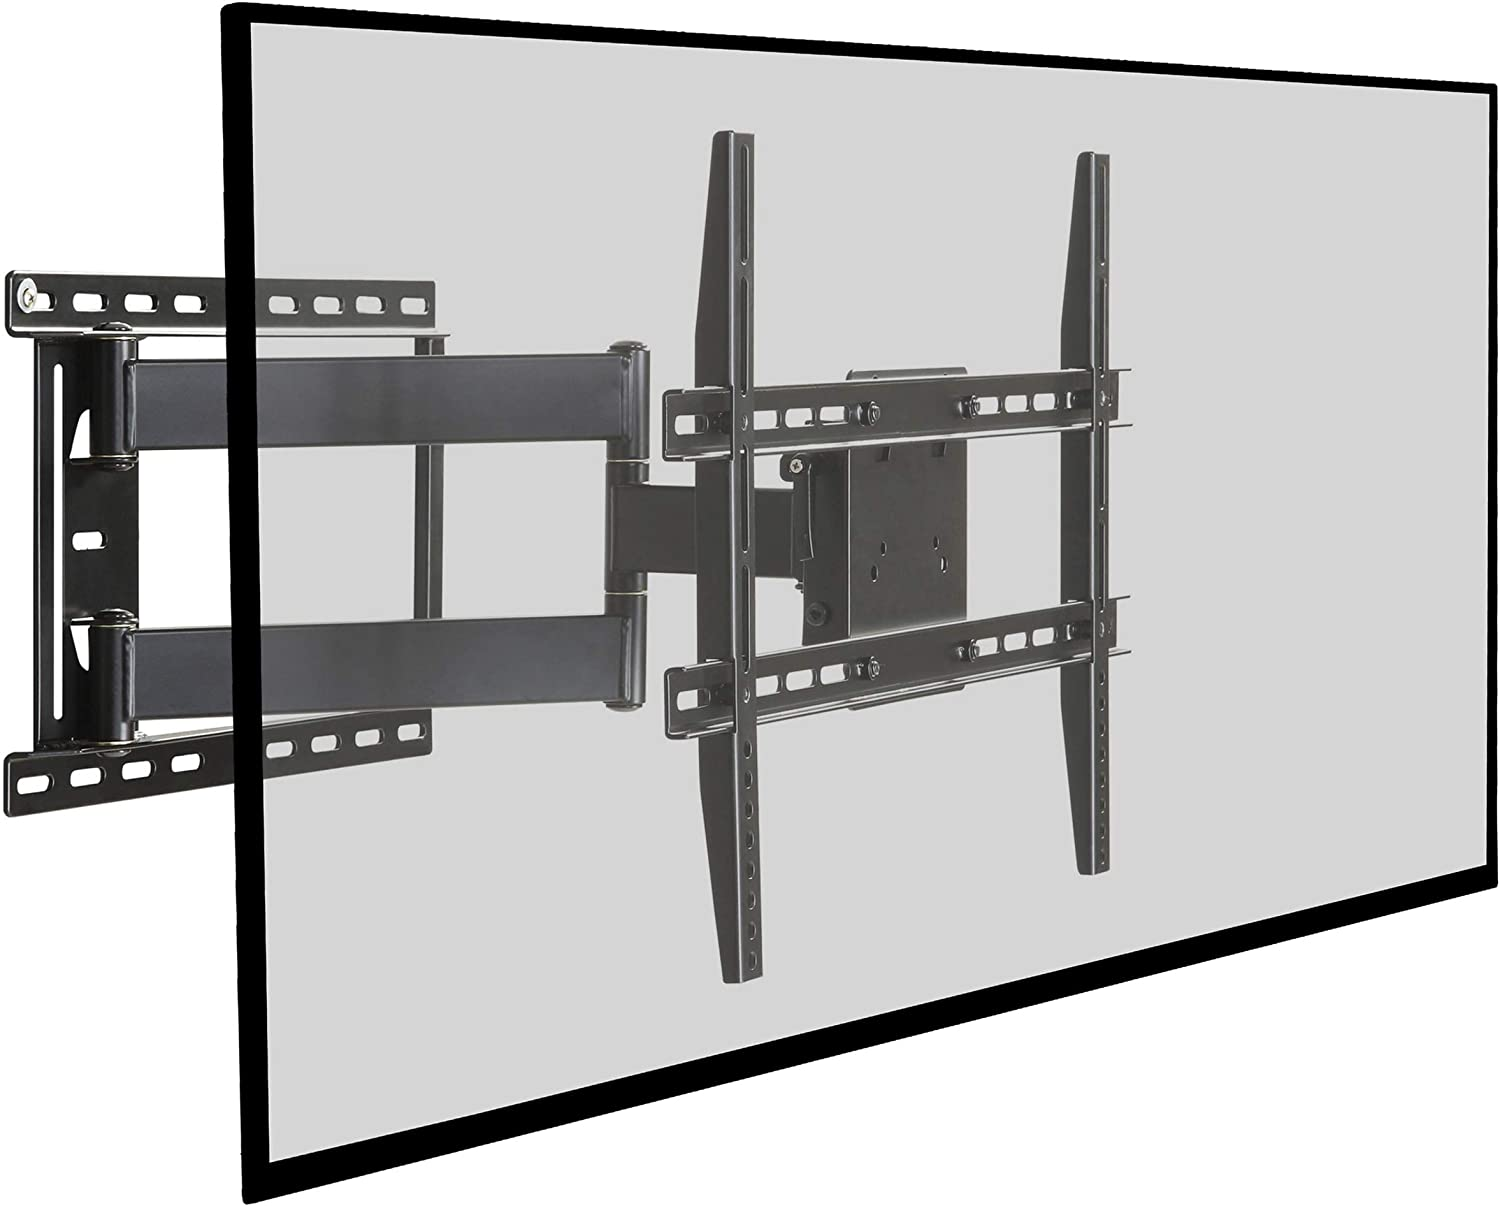 Atlantic Full Motion TV Wall Mount - Articulating Mount for Flat Screen TVs from 37 inch to 64 inch, PN63607068